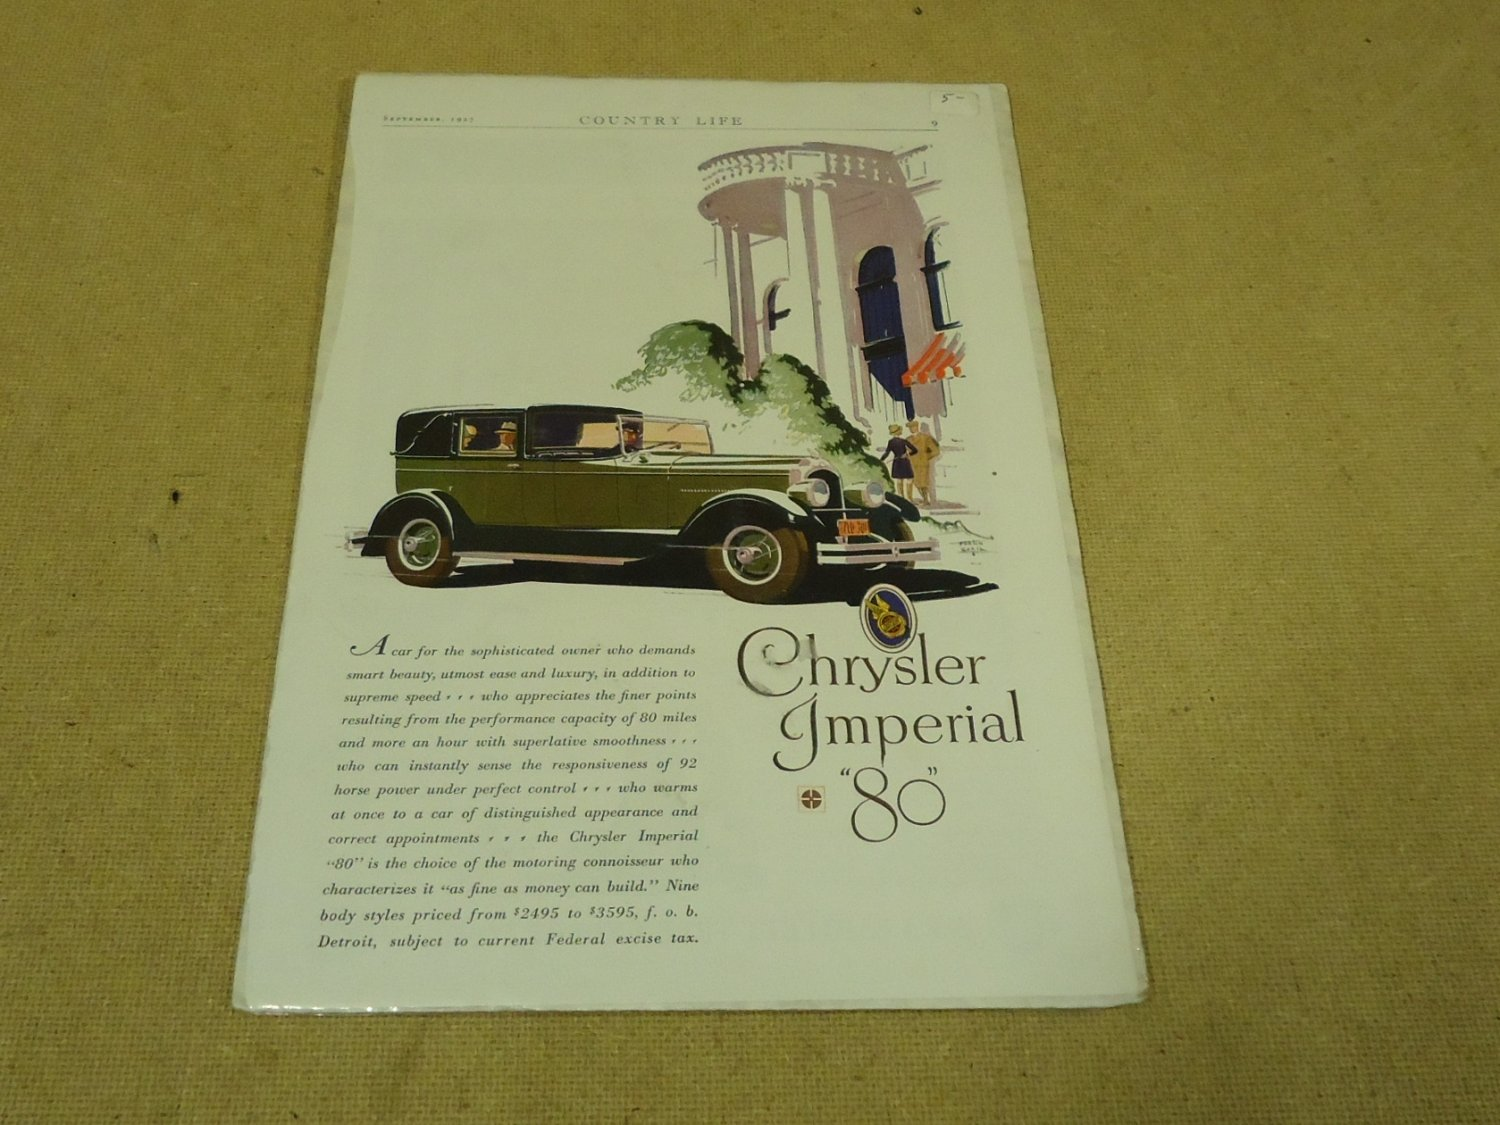 Chrysler Vintage Laminated Imperial 80 Ad White/Green/Pink Country Life